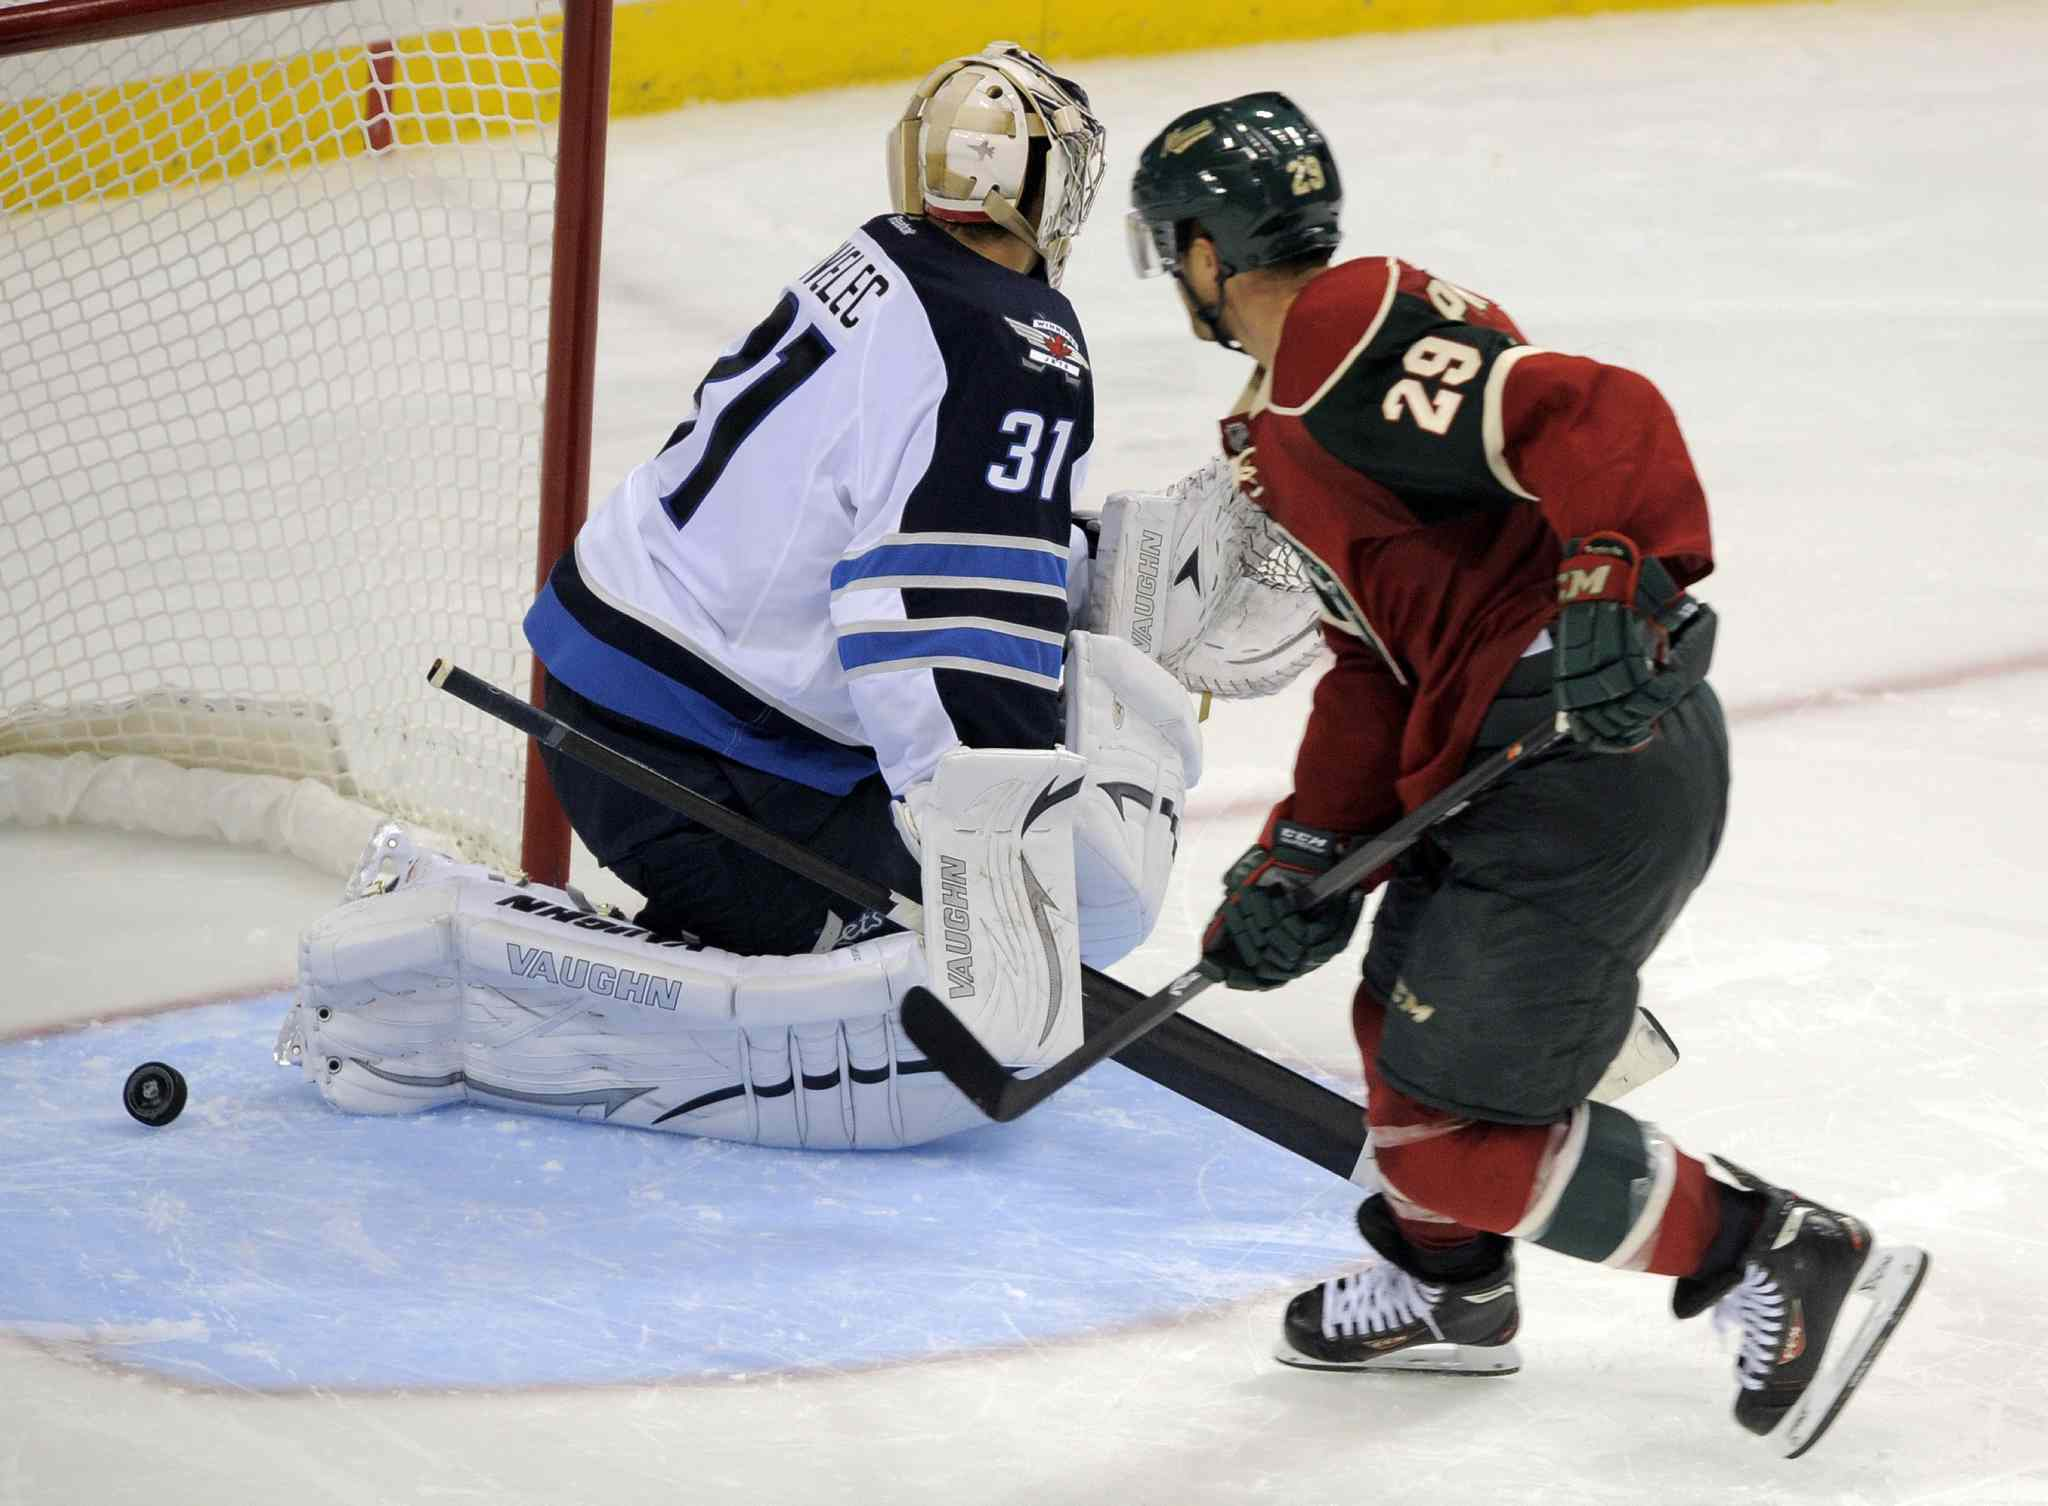 Minnesota Wild's Jason Pominville (29) beats Winnipeg Jets goalie Ondrej Pavelec for the winning goal in the shootout. Minnesota won 4-3.